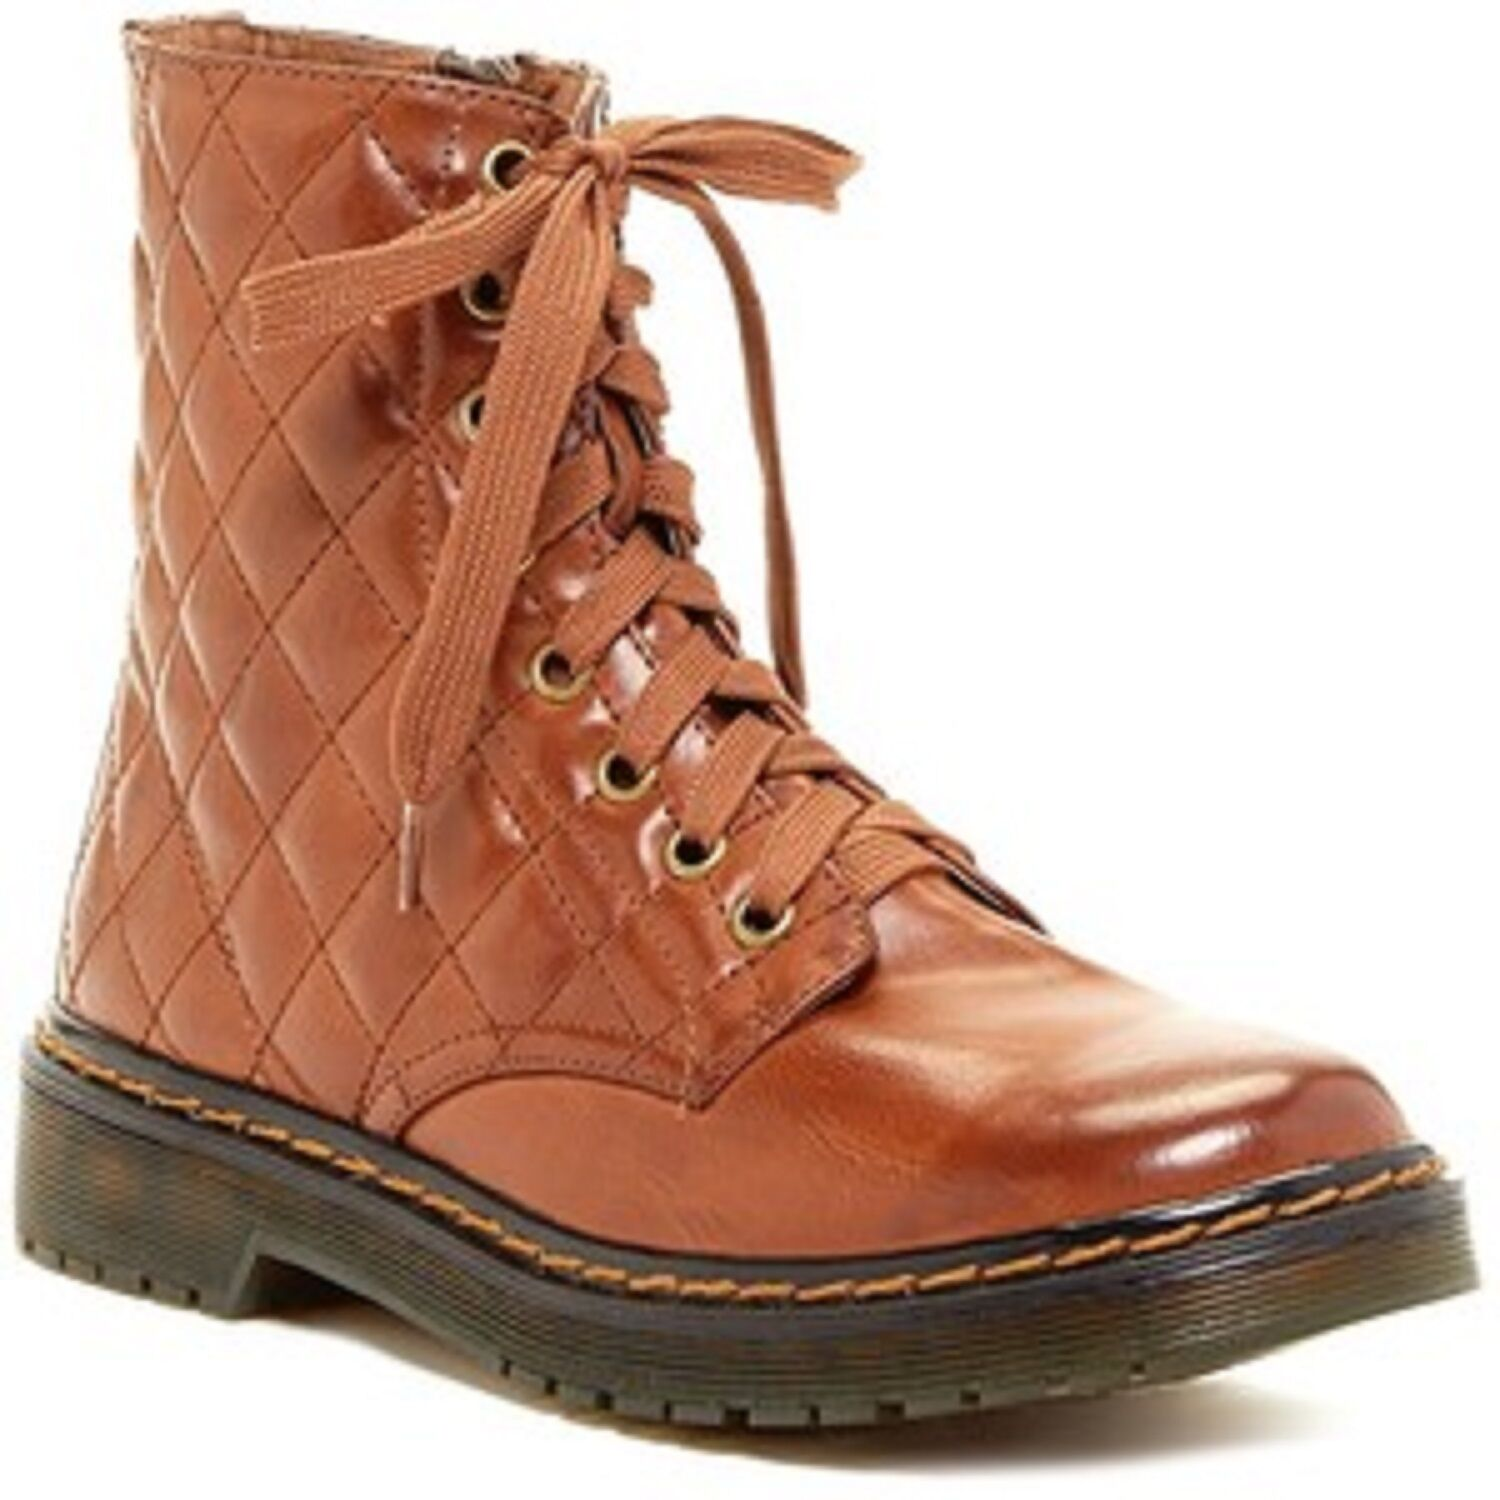 NEW EXTREME By Eddie Marc Dora Quilted Doc BootS WOMEN'S SZ 7